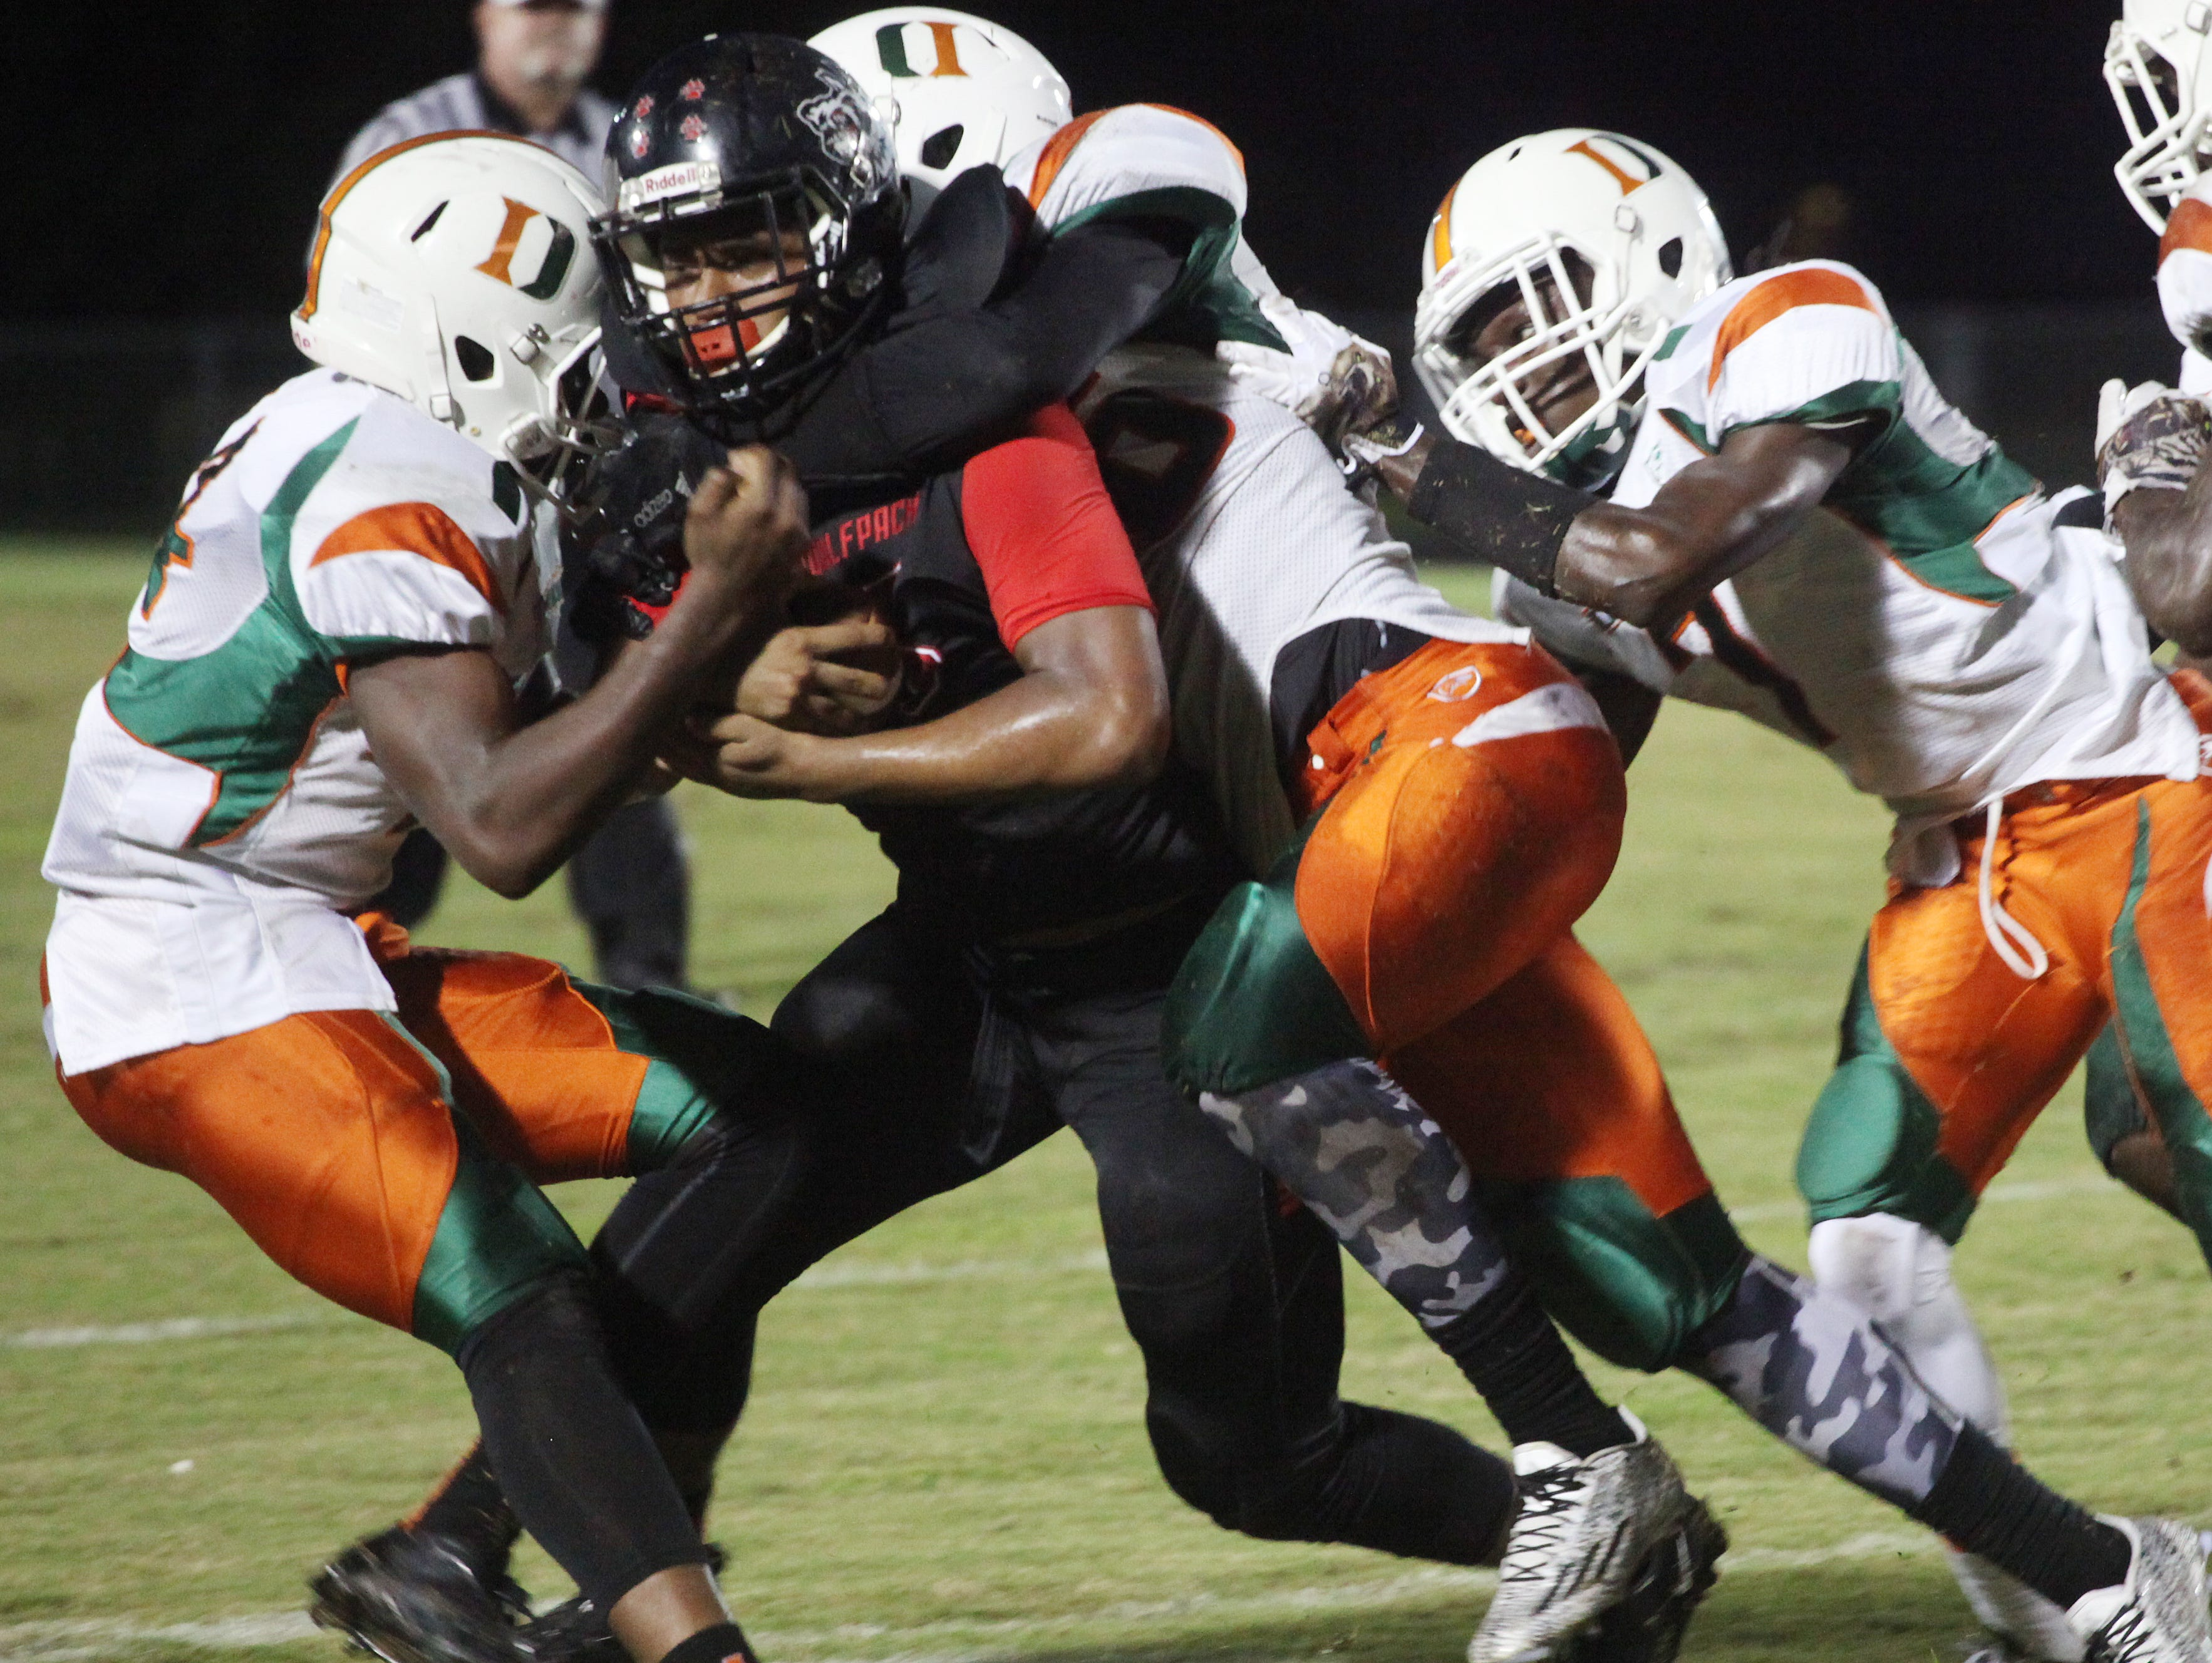 Junior Fa'Najae Goyay, a South Fort Myers High transfer, will fill the linebacker role left vacant by the graduated Mi'Cario Stanley at North Fort Myers High this upcoming season.